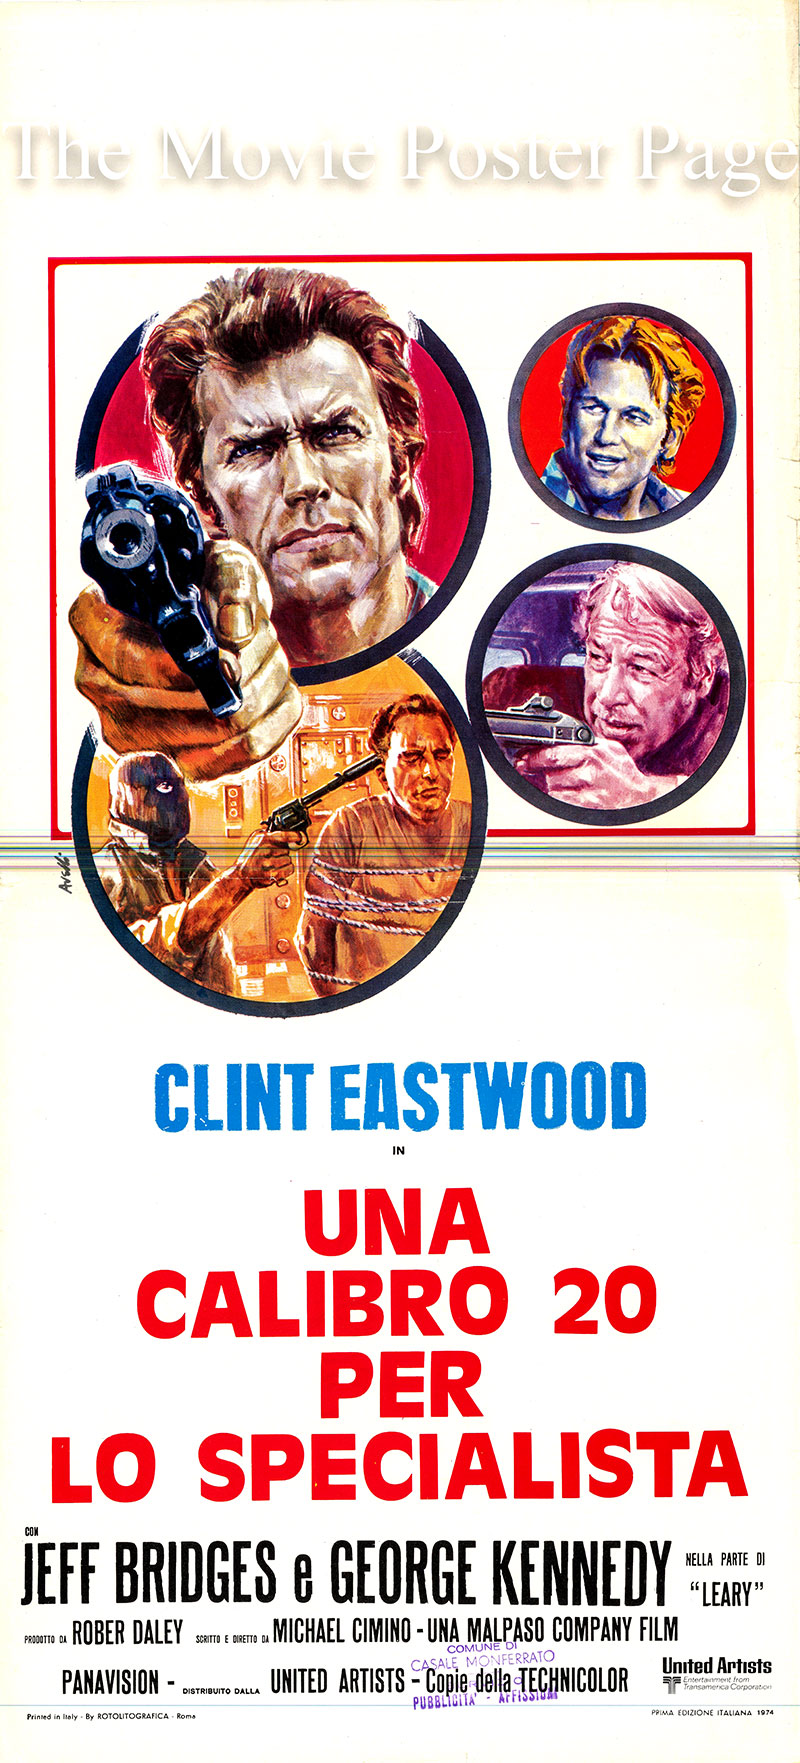 Pictured is an Italian locandina poster for the 1974 Michael Cimino film Thunderbolt and Lightfoot starring Clint Eastwood as Thunderbolt.